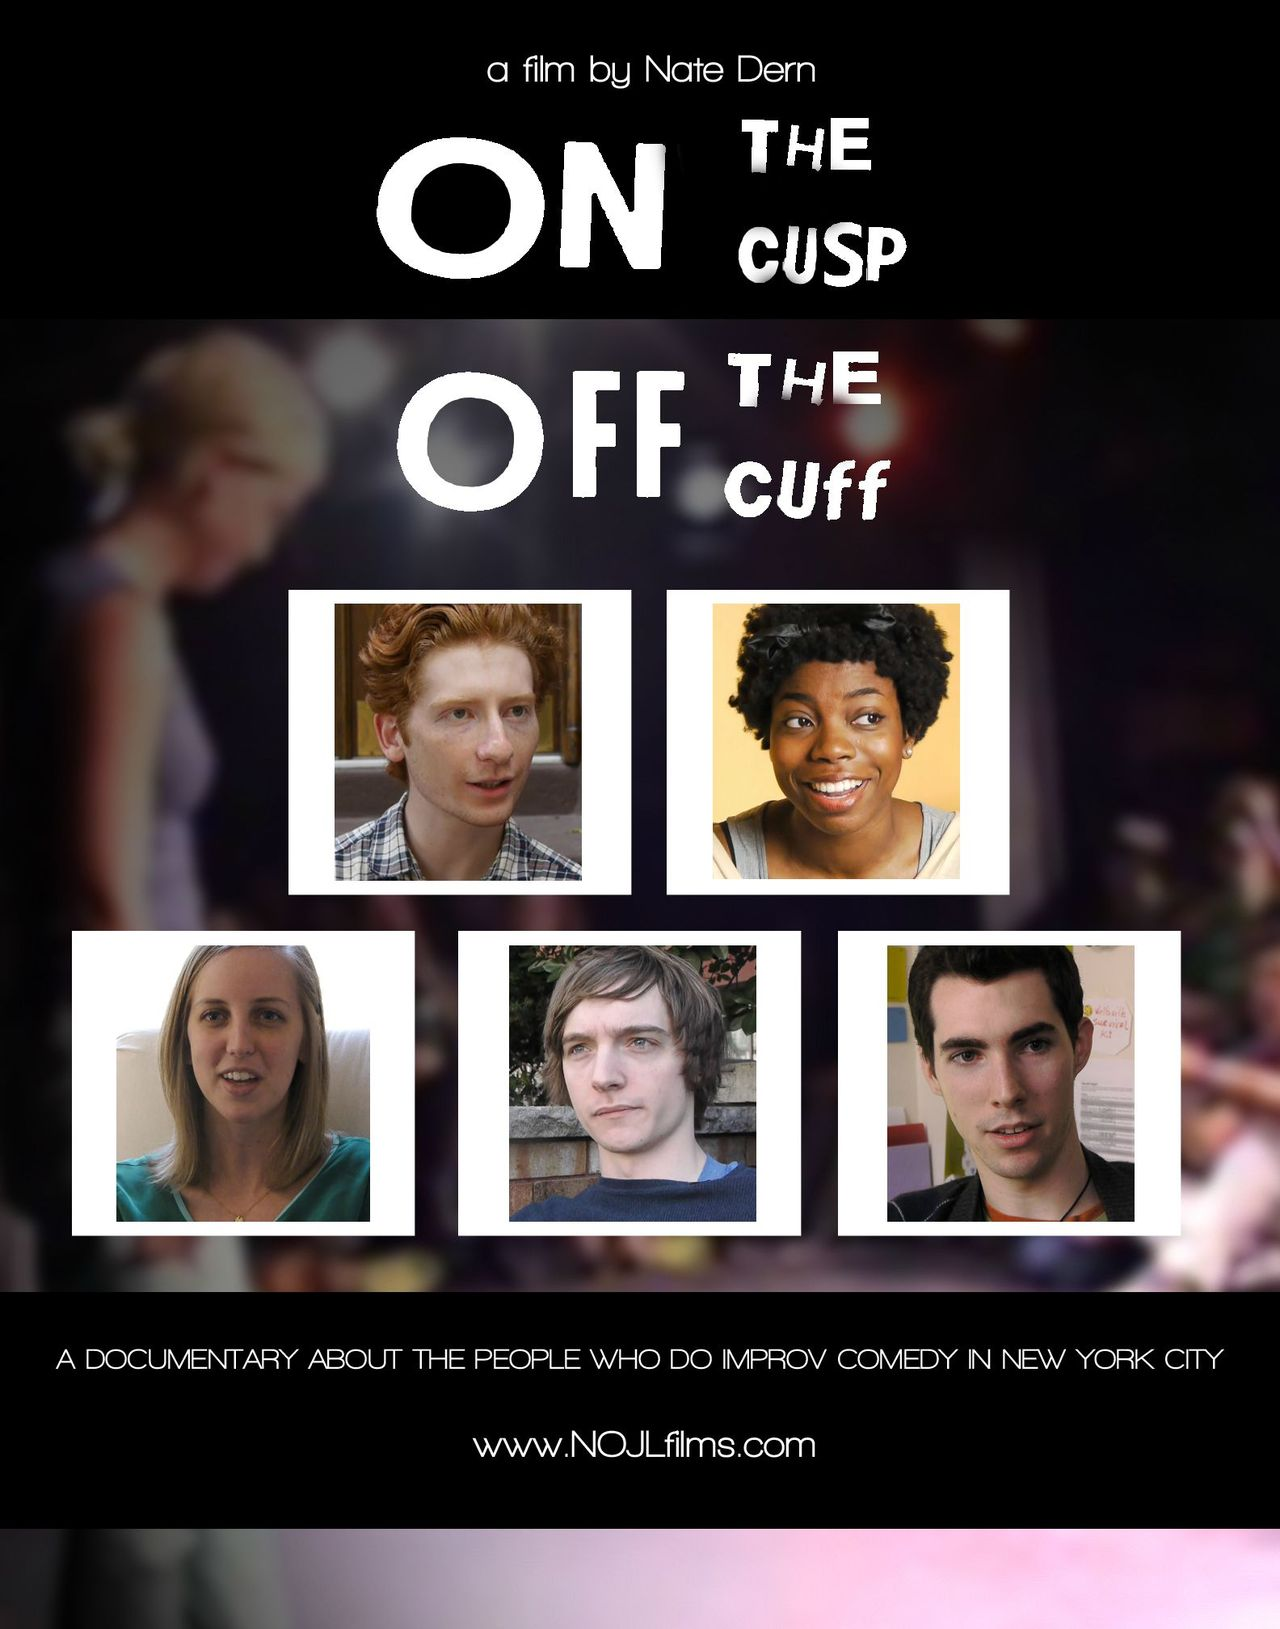 Thanks to everybody who came to the preview/work-in-progress screening of  On The Cusp, Off The Cuff  at UCBeast tonight! Stay tuned for future opportunities to see the film.     improvdoc :     Special preview screening of  On The Cusp, Off The Cuff  this Wednesday 6/27 at 6pm at UCBeast (Avenue A and 3rd Street) - part of the Del Close Marathon festivities.    Make reservations  here .     OTCOTC   is still a work in progress, so if you're in NYC and able to make it I'd appreciate any feedback or thoughts.